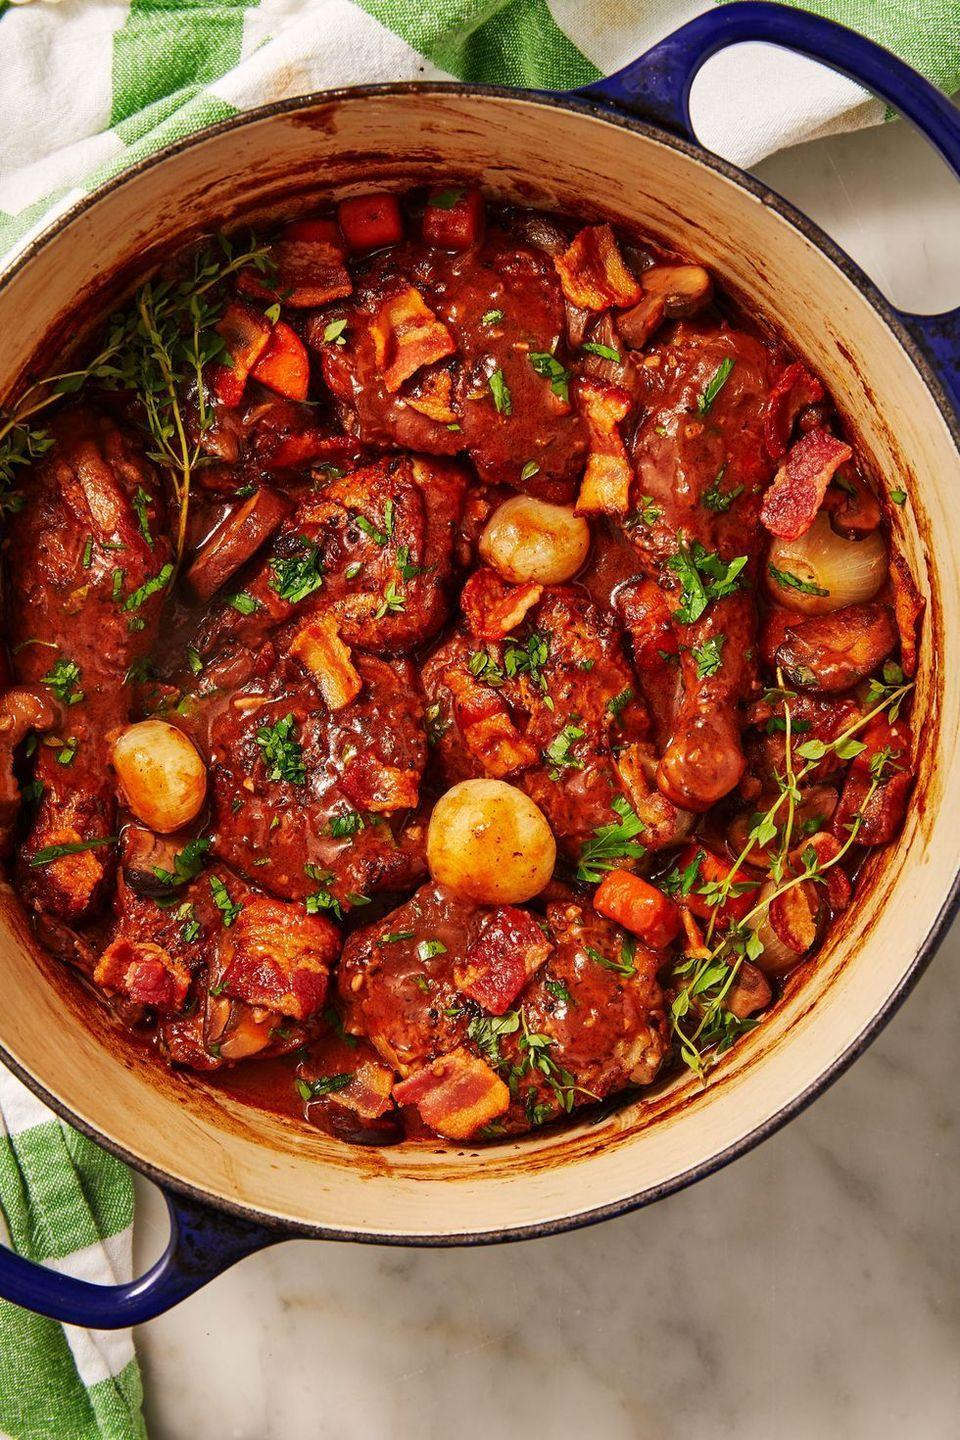 """<p>Bacon, mushrooms, and pearl onions give this dish so much flavour and makes this one of our favourite <a href=""""https://www.delish.com/uk/cooking/recipes/g33530905/chicken-weeknight-dinners/"""" rel=""""nofollow noopener"""" target=""""_blank"""" data-ylk=""""slk:chicken dinners"""" class=""""link rapid-noclick-resp"""">chicken dinners</a>.</p><p>Get the <a href=""""https://www.delish.com/uk/cooking/recipes/a35505456/coq-au-vin-recipe/"""" rel=""""nofollow noopener"""" target=""""_blank"""" data-ylk=""""slk:Coq Au Vin"""" class=""""link rapid-noclick-resp"""">Coq Au Vin</a> recipe. </p>"""